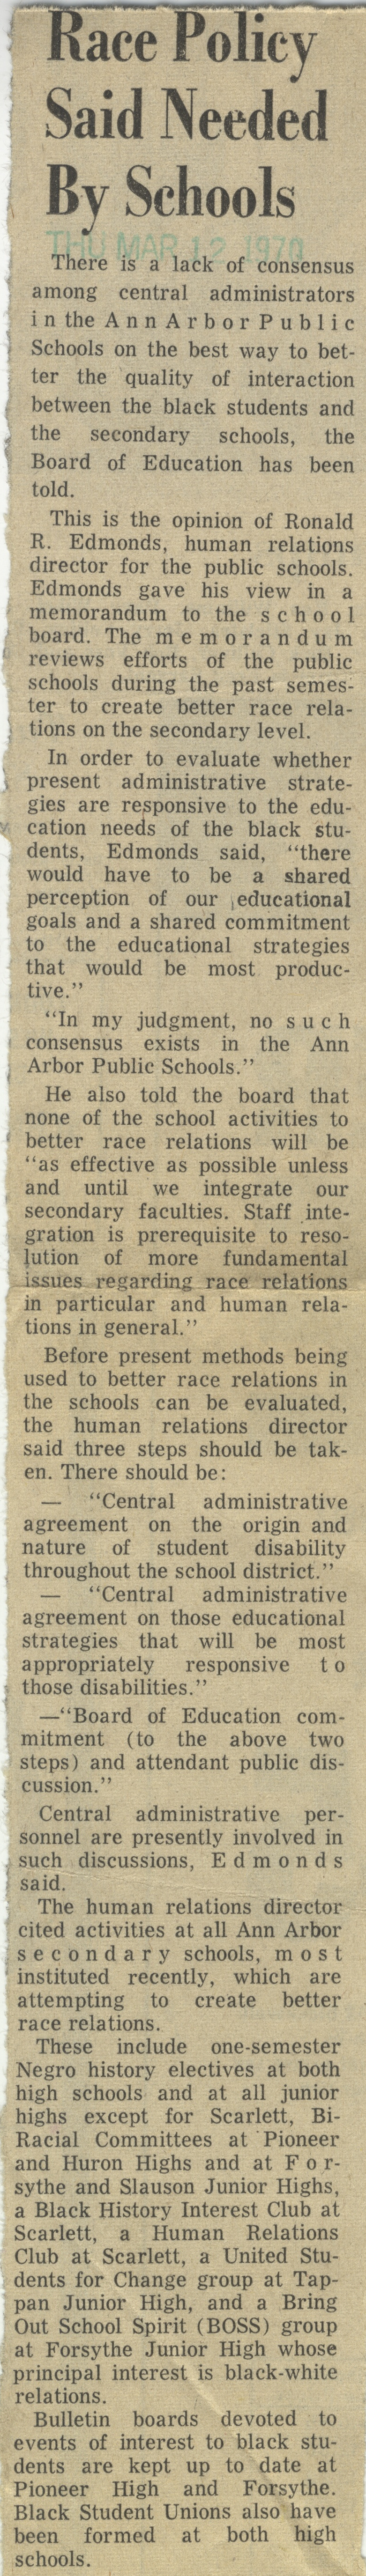 Race Policy Said Needed By Schools image